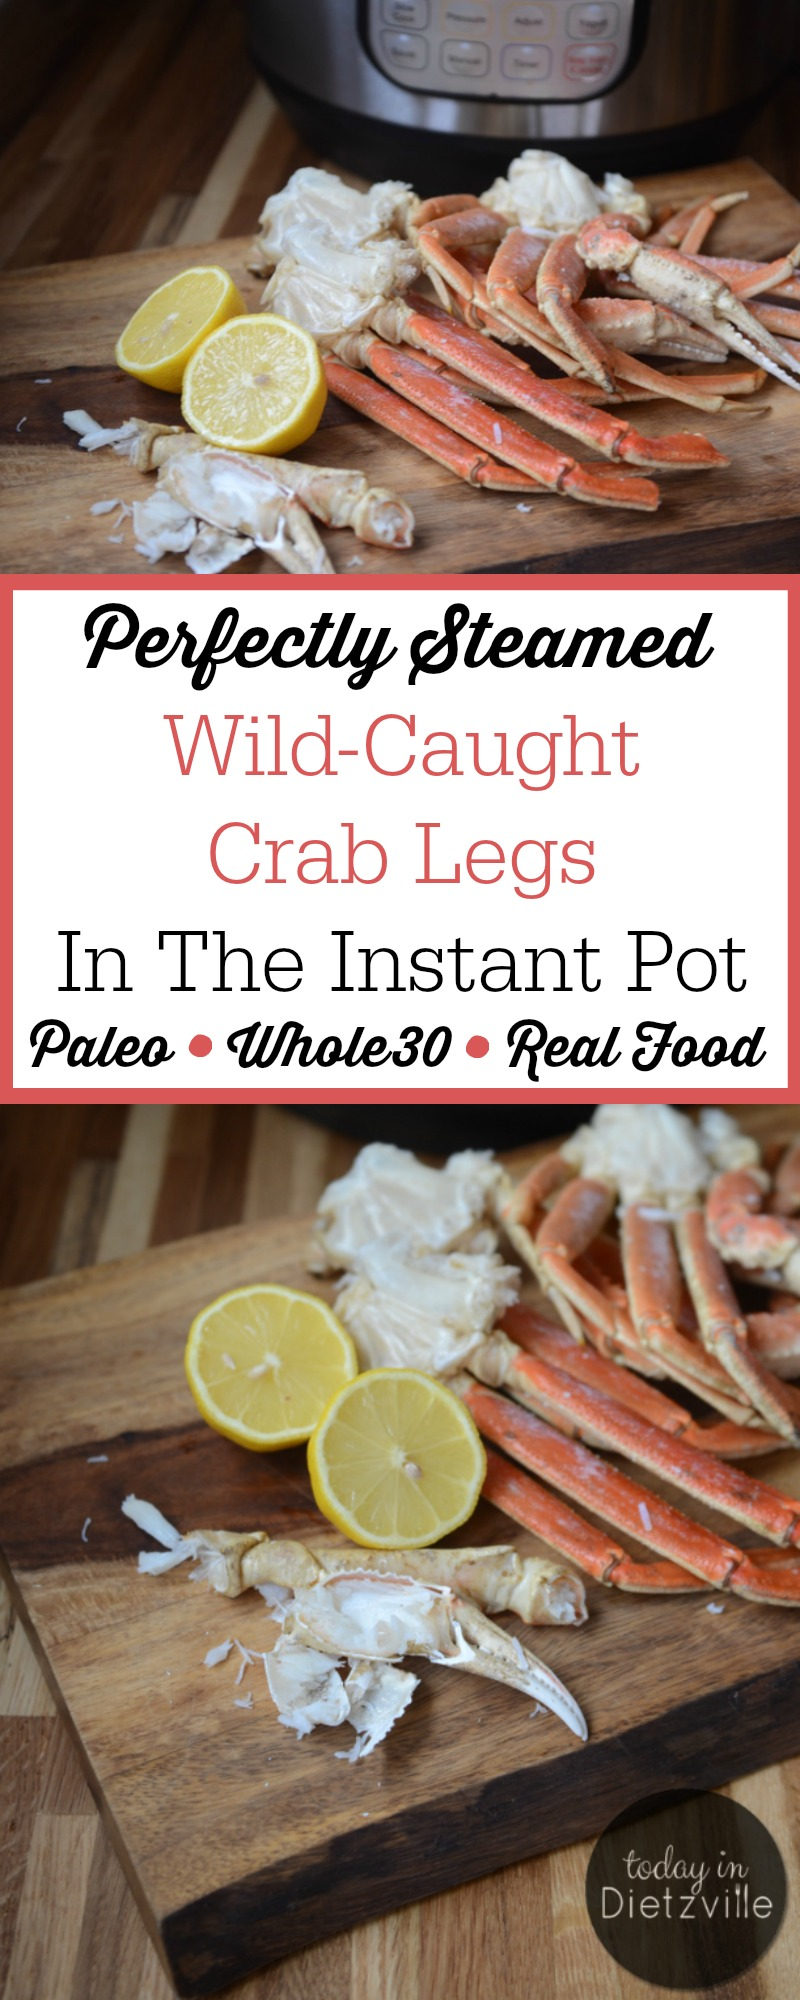 instant pot crab legs perfectly steamed in the instant pot